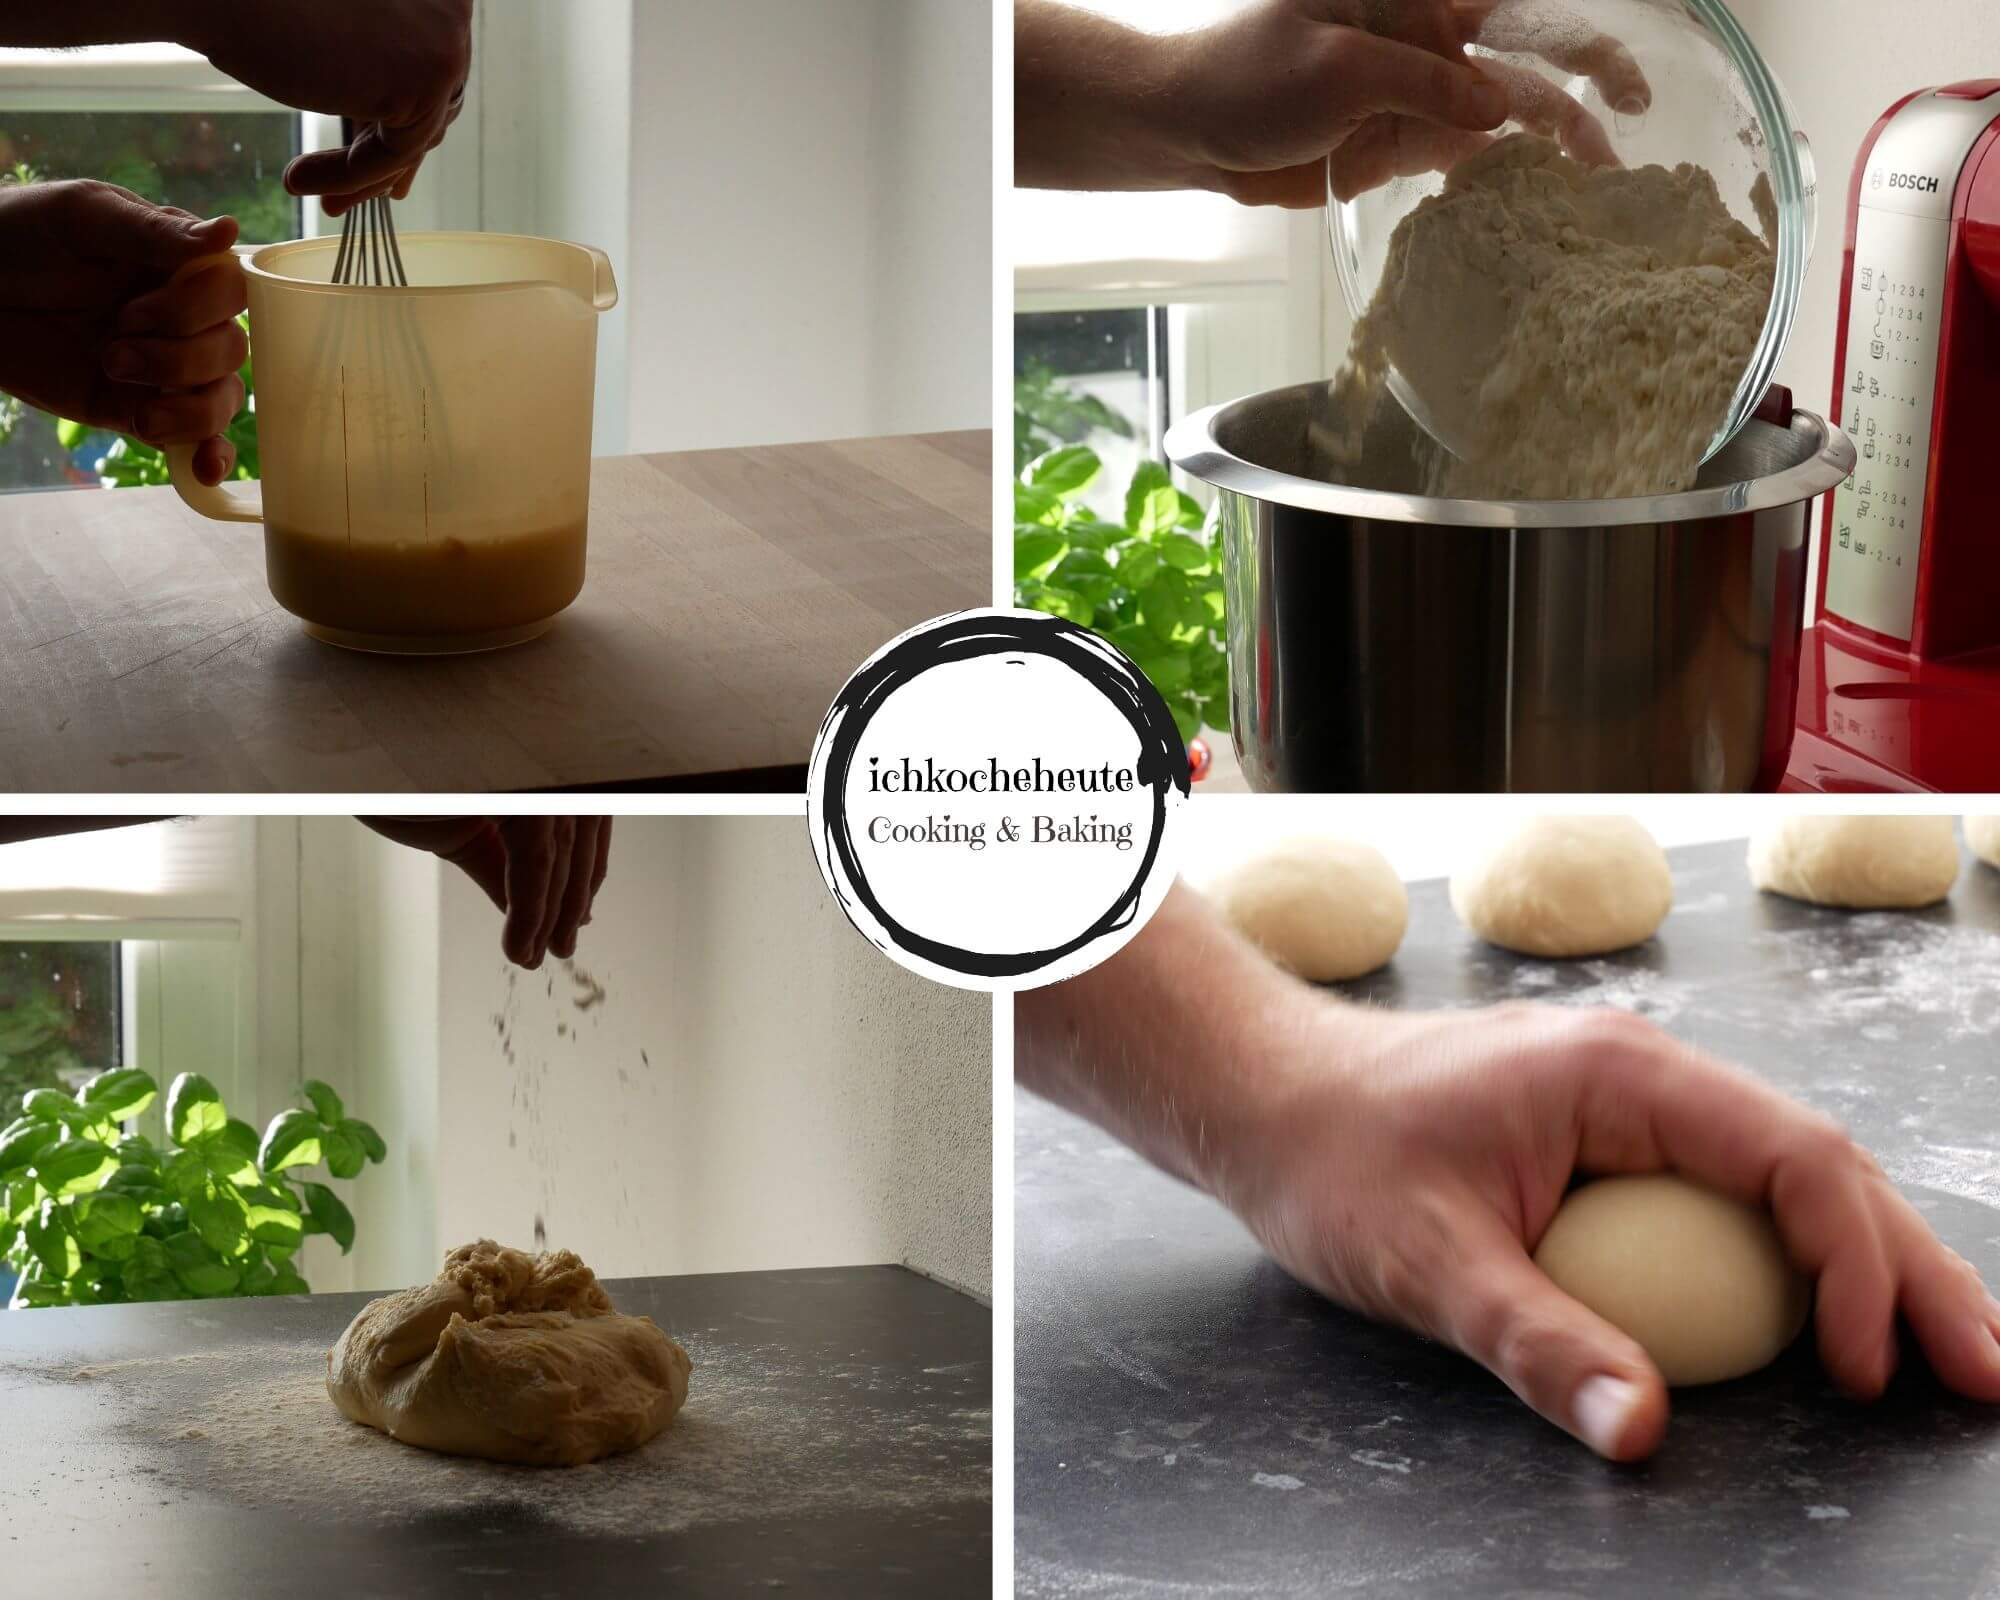 Kneading & Shaping Dough